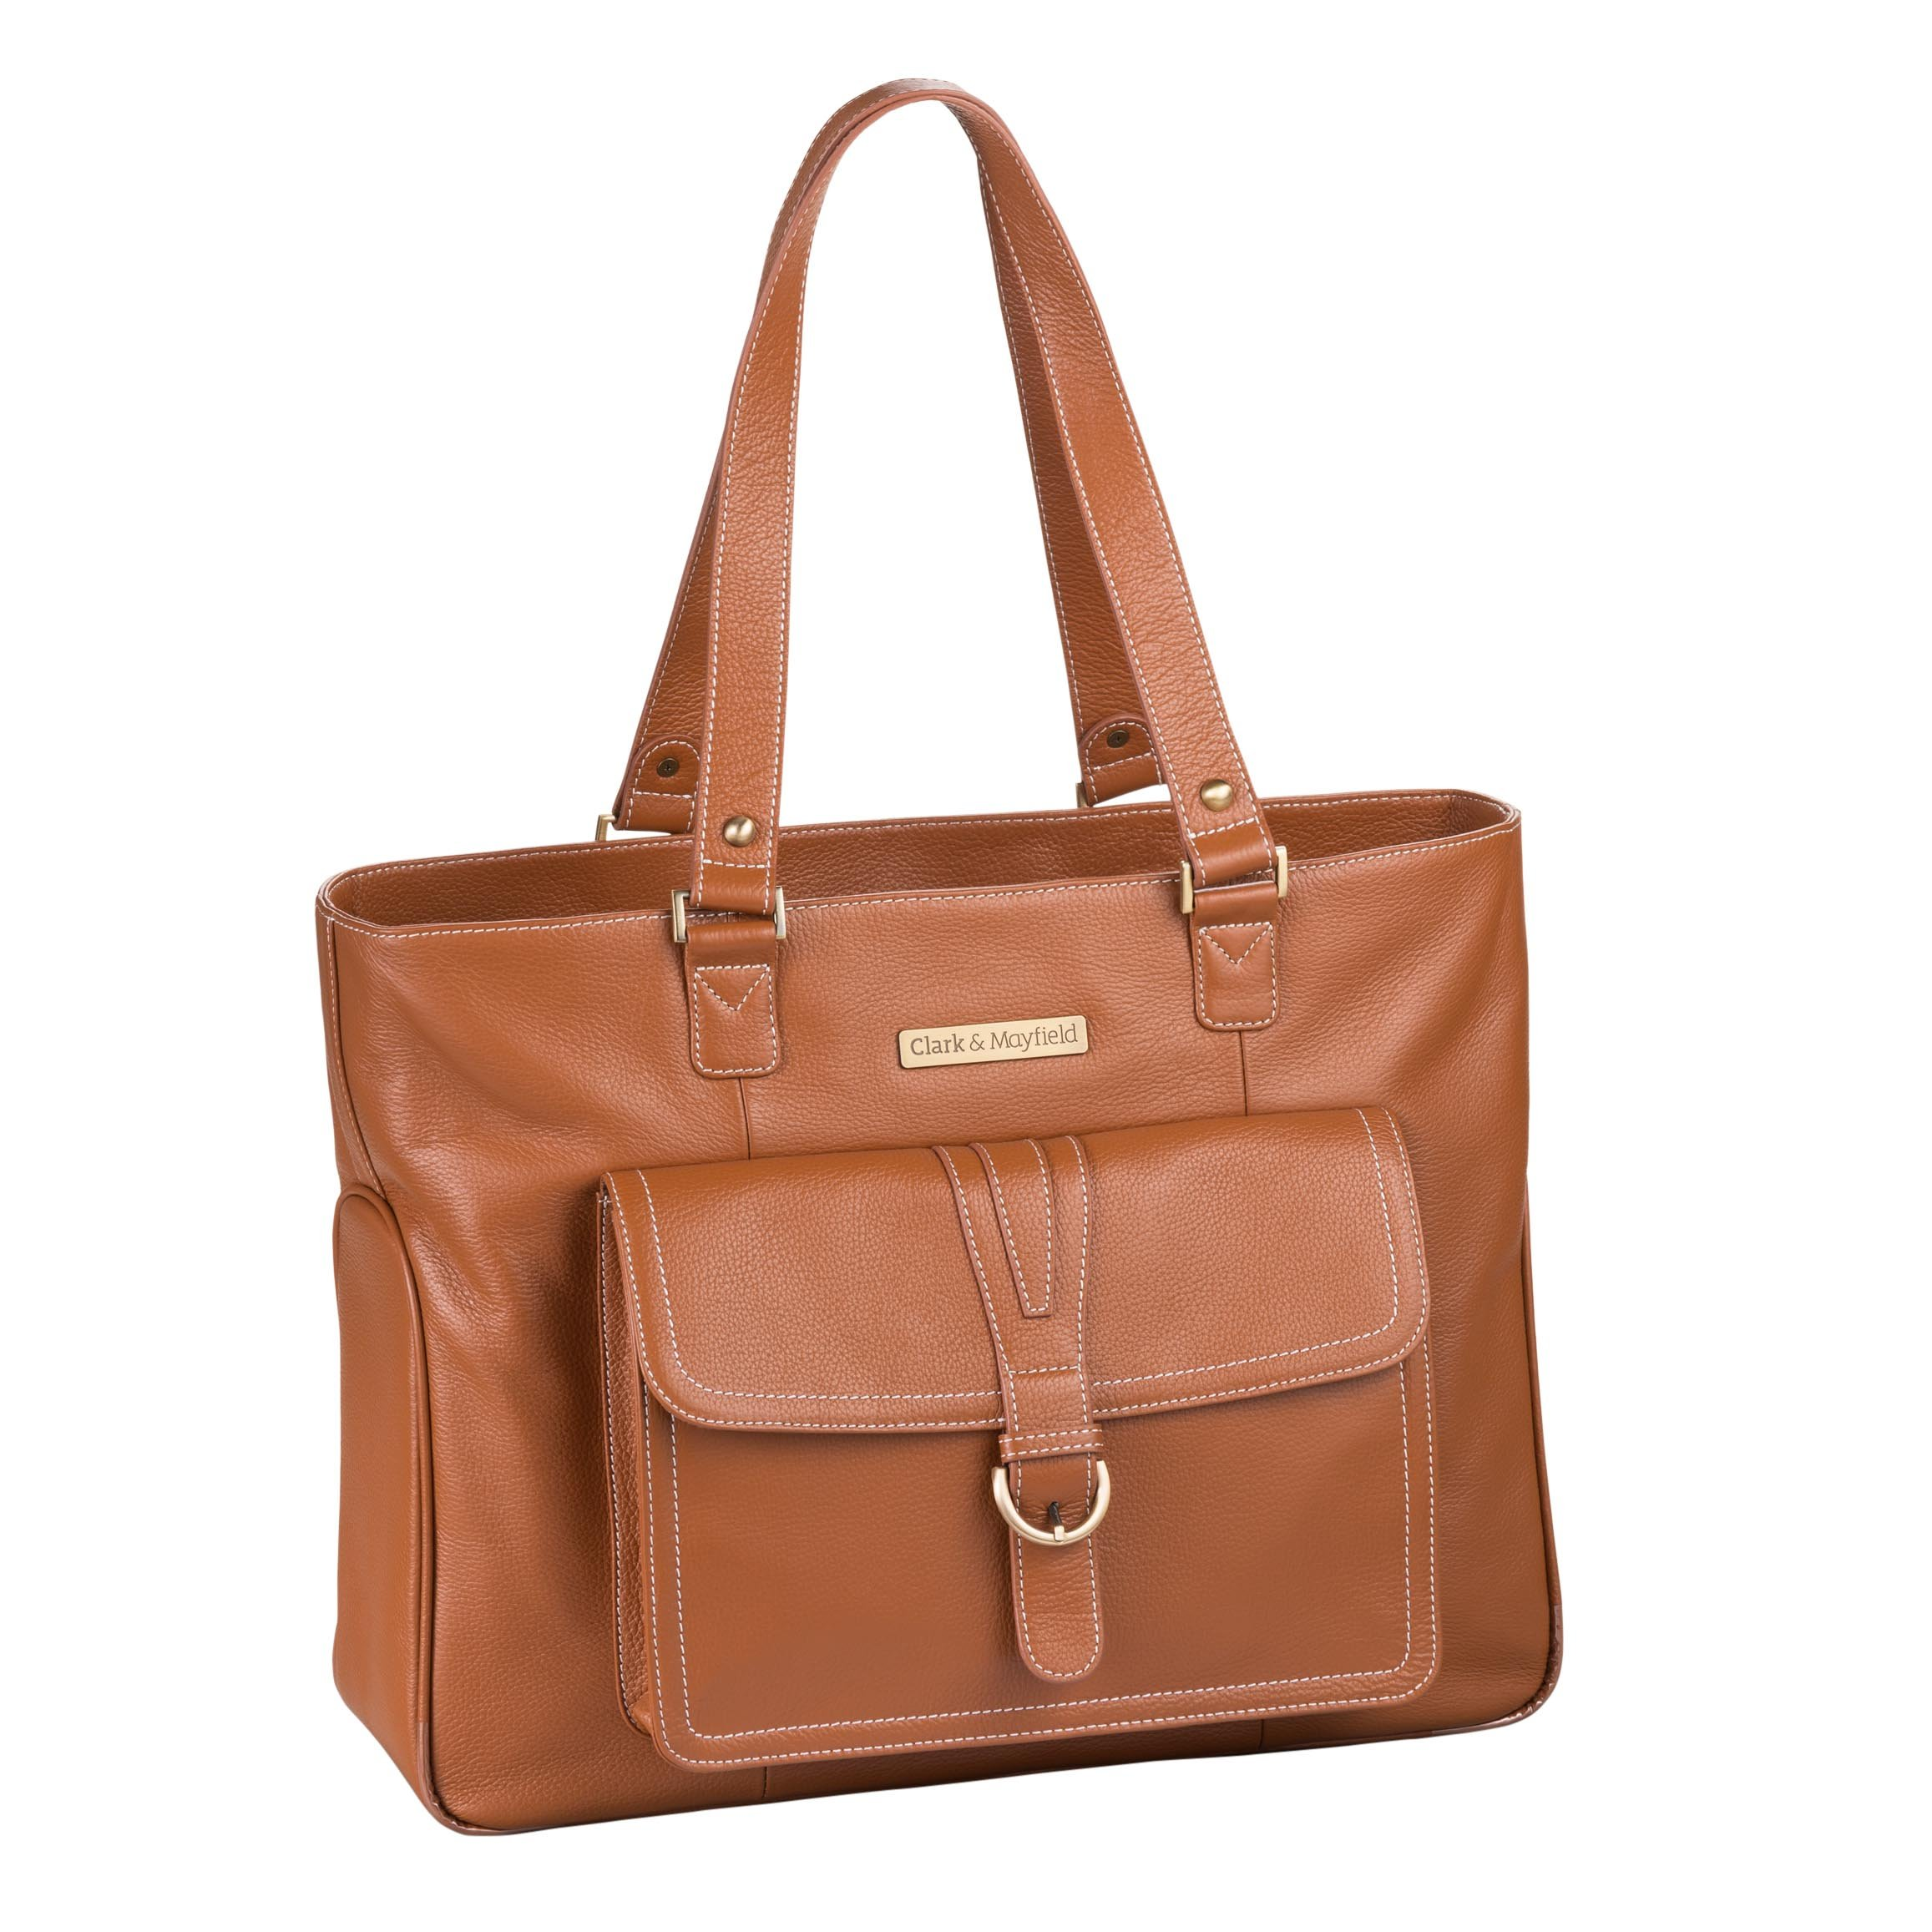 Clark & Mayfield Stafford Pro Leather Laptop Tote 17.3'' (Camel)